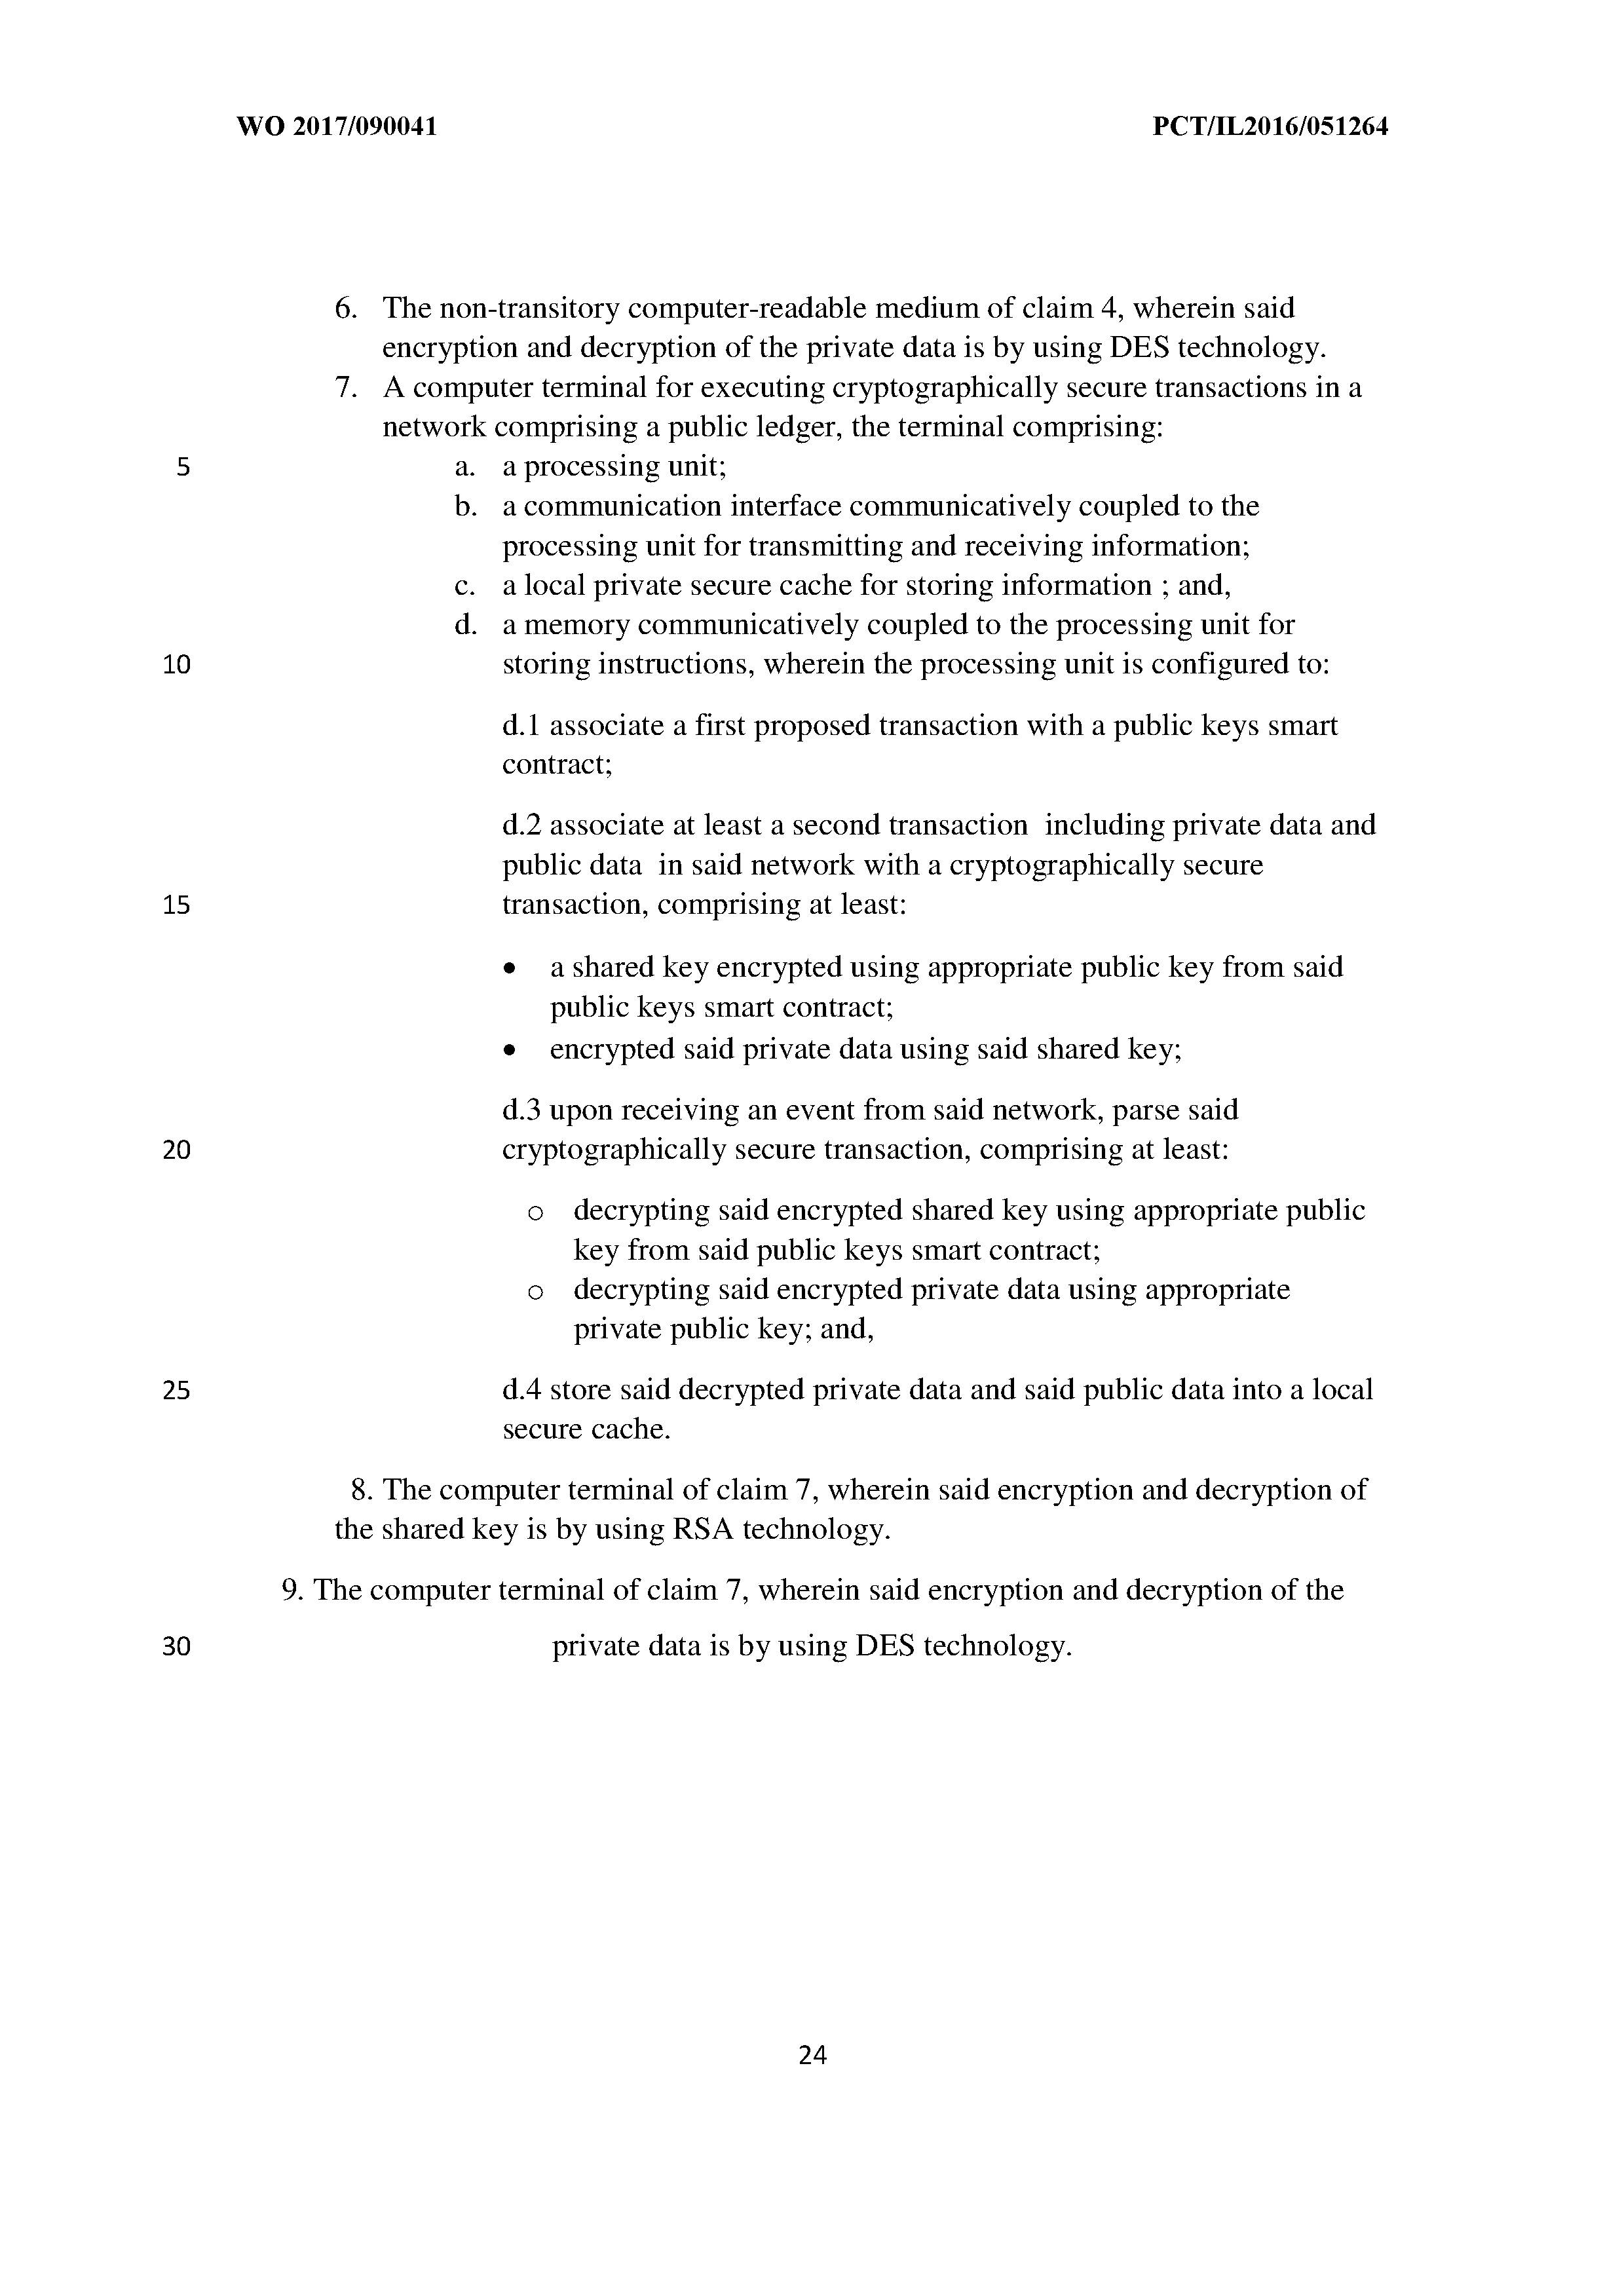 WO 2017/090041 A1 - A System And Method For Blockchain Smart